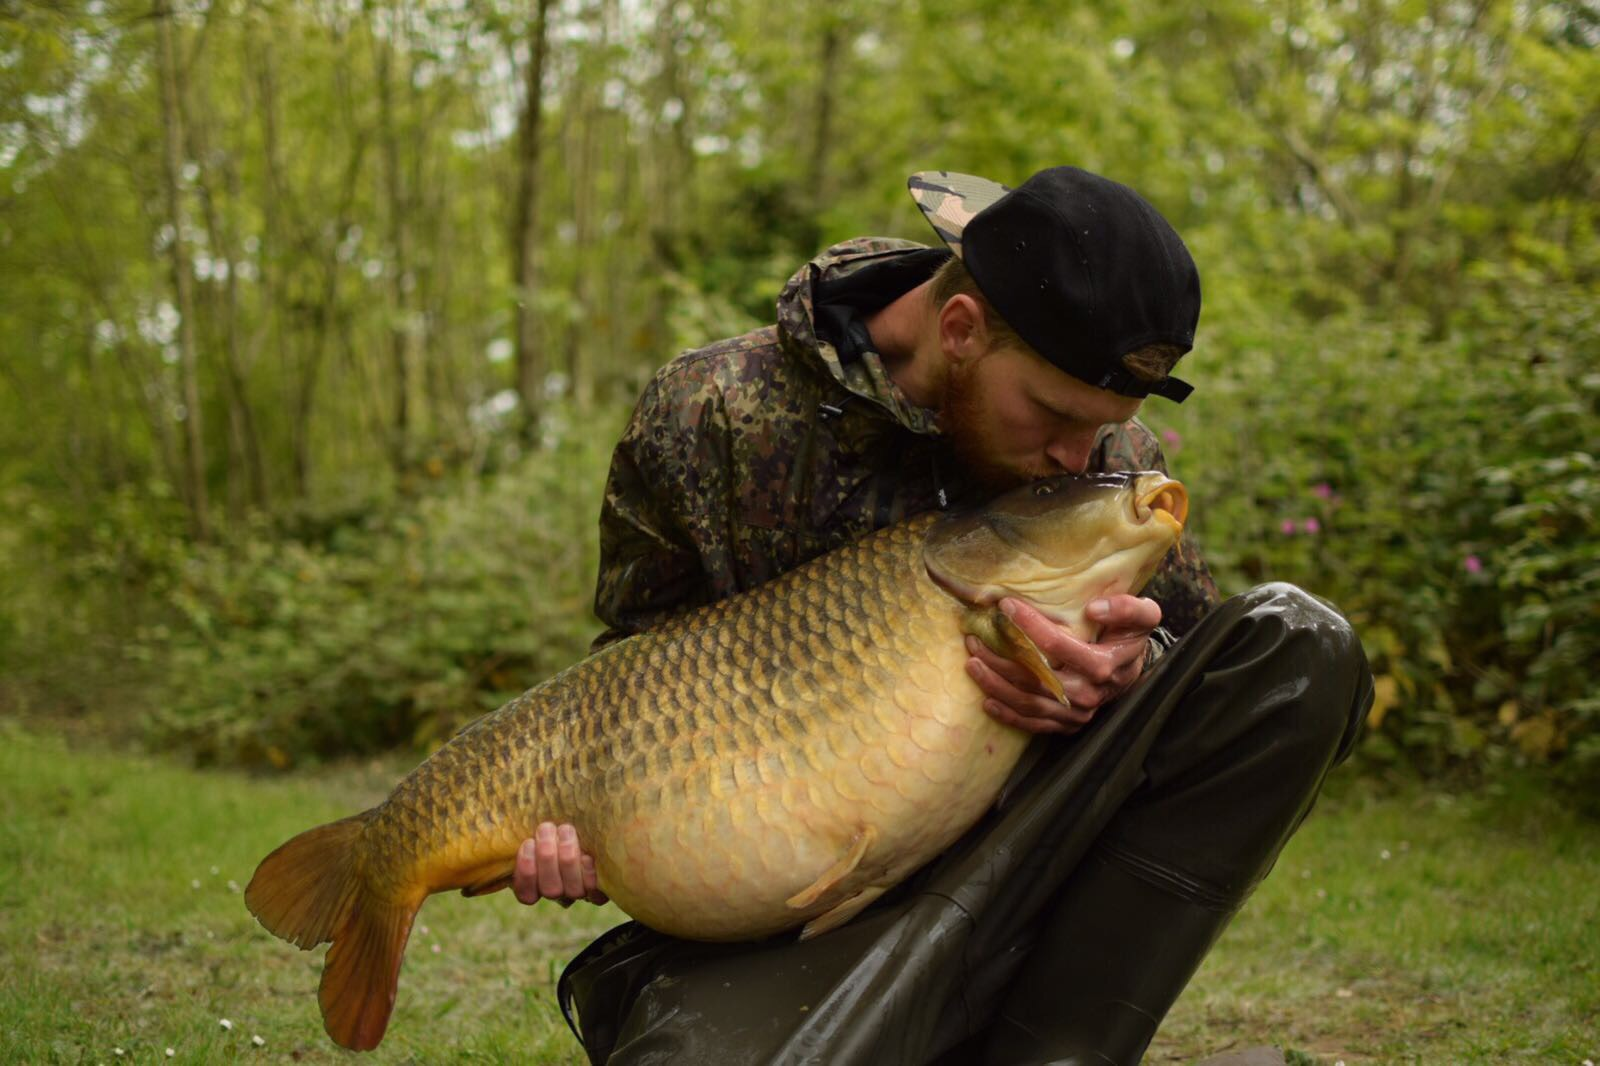 The Immaculate Common at 42lb